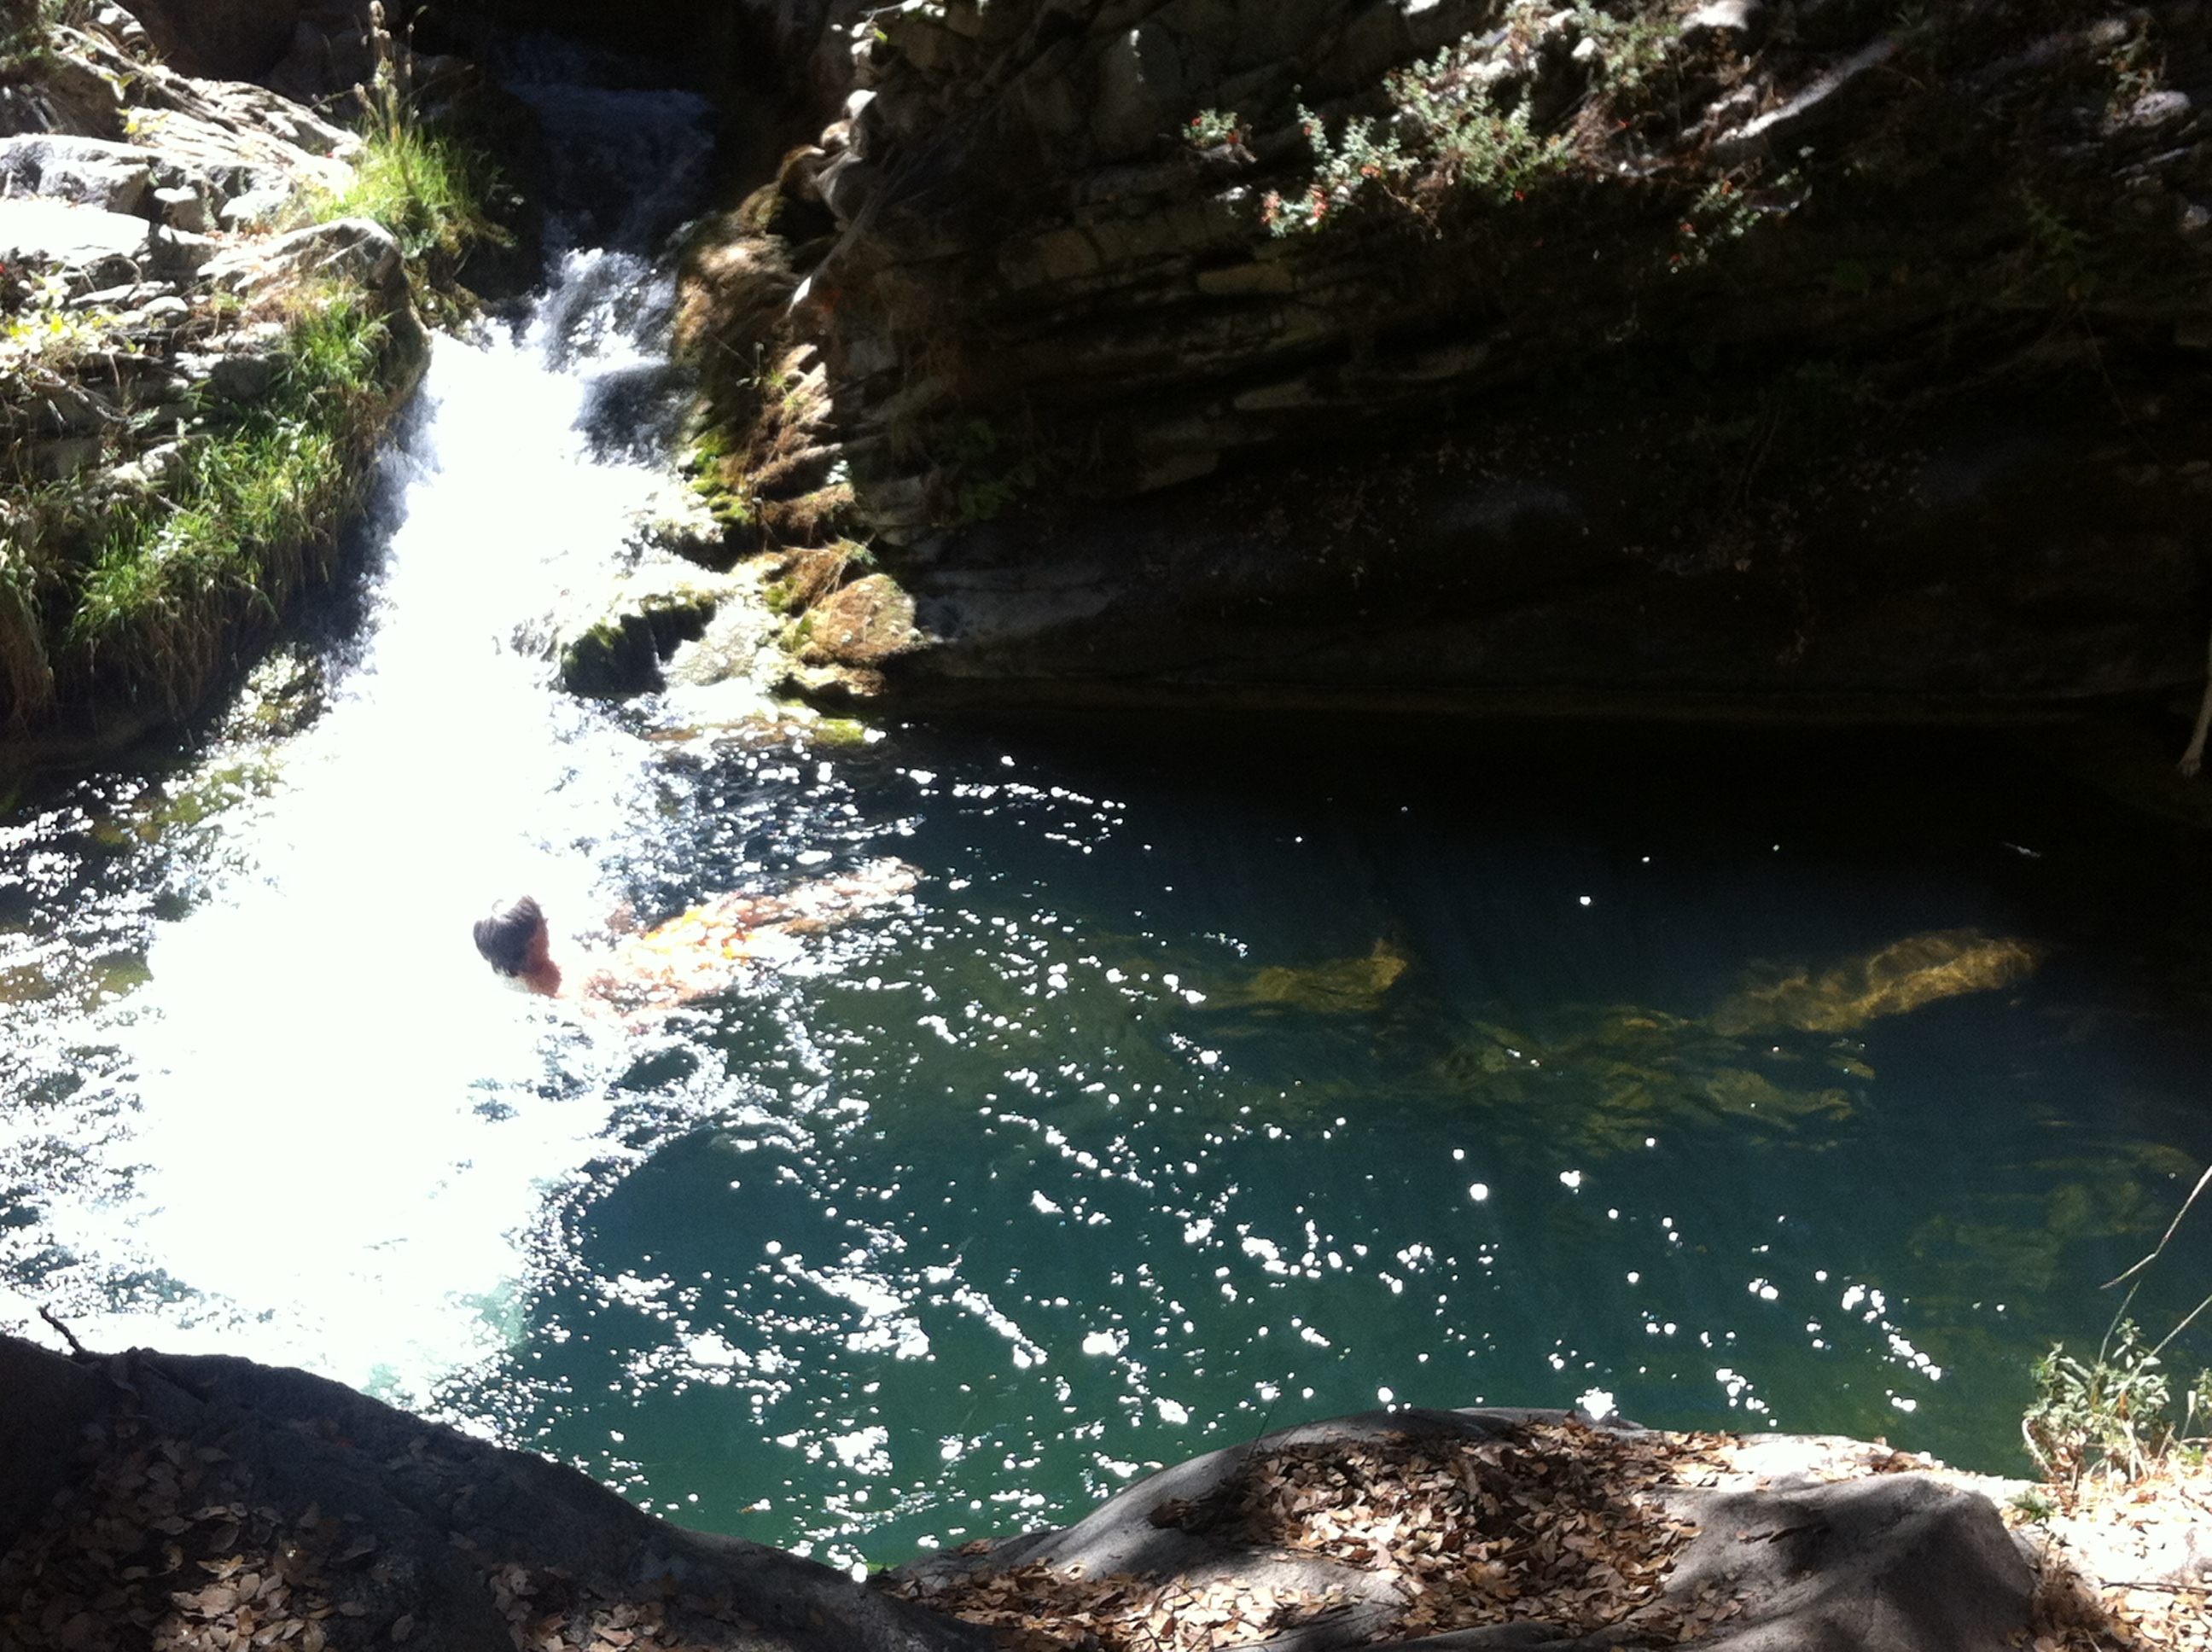 Swimming in the crystal clear waters of the Tule River nearby Sequoia Meadows.